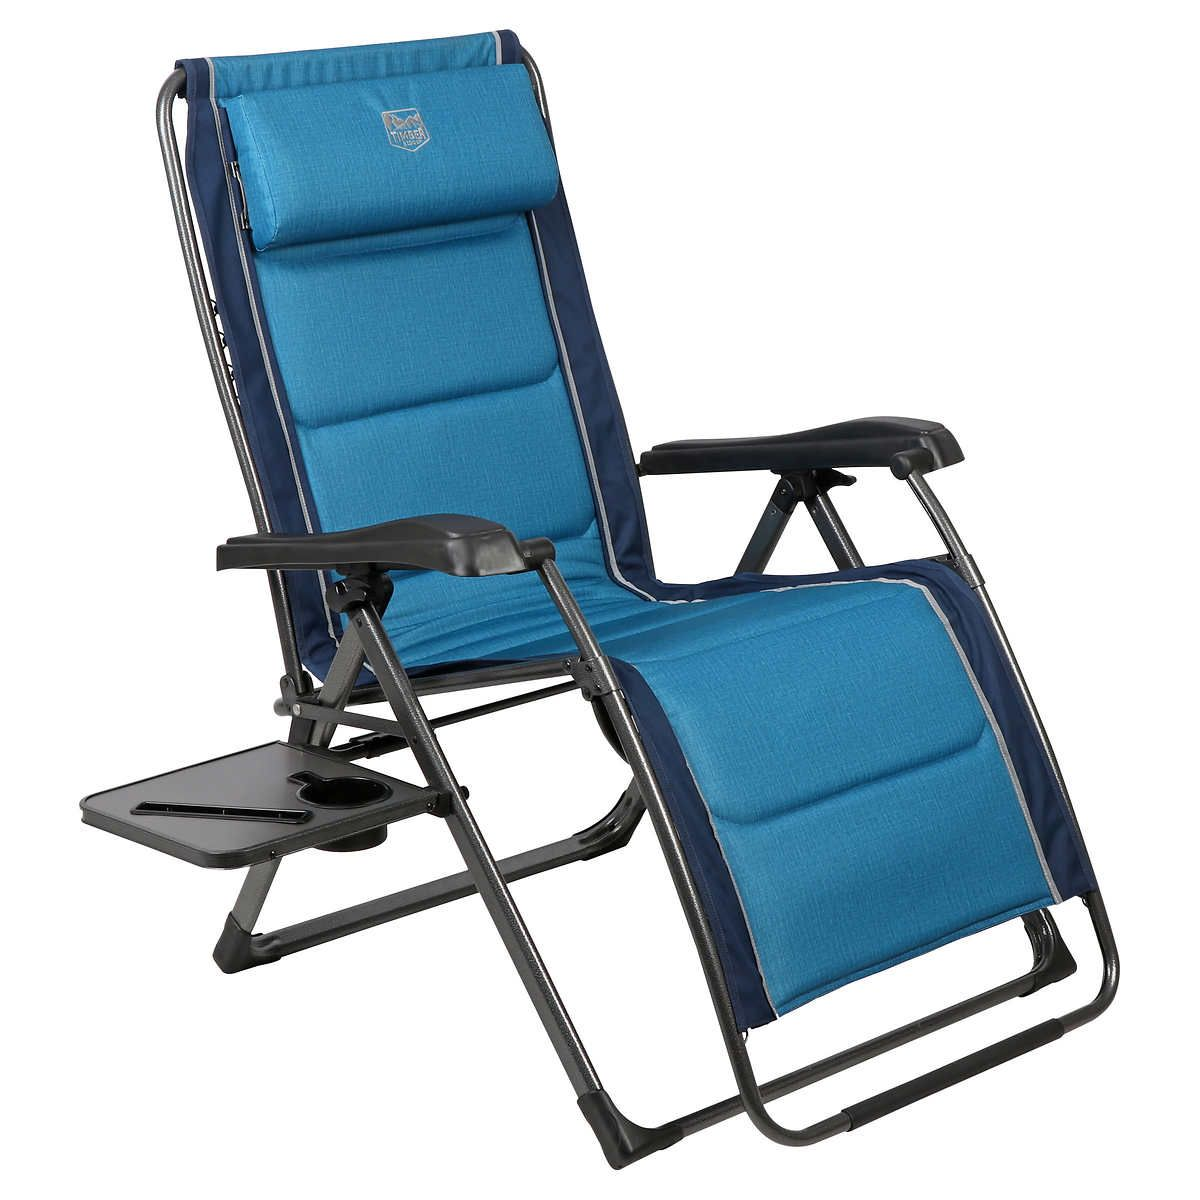 Timber Ridge Zero Gravity Lounger In 2020 Outdoor Chairs Zero Gravity Chair Zero Gravity Recliner